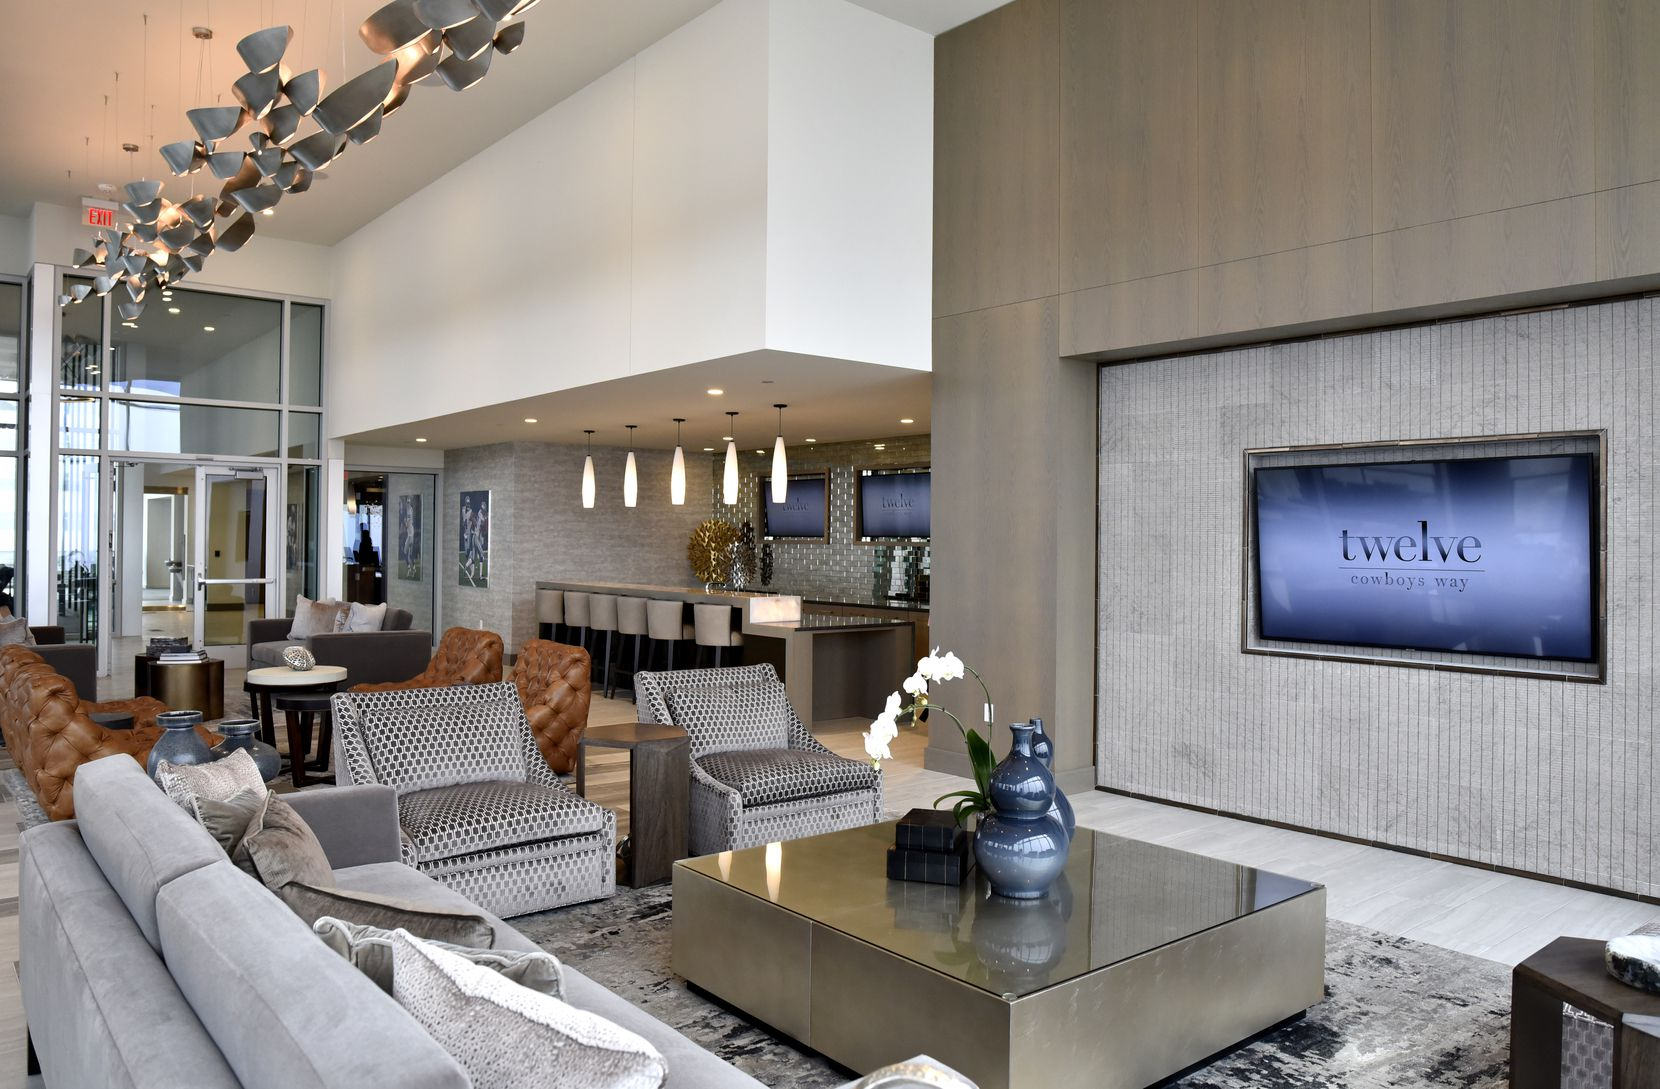 A lounge area available for private parties on the sixth floor of the Twelve Cowboys Way luxury residential tower at the Star in Frisco.